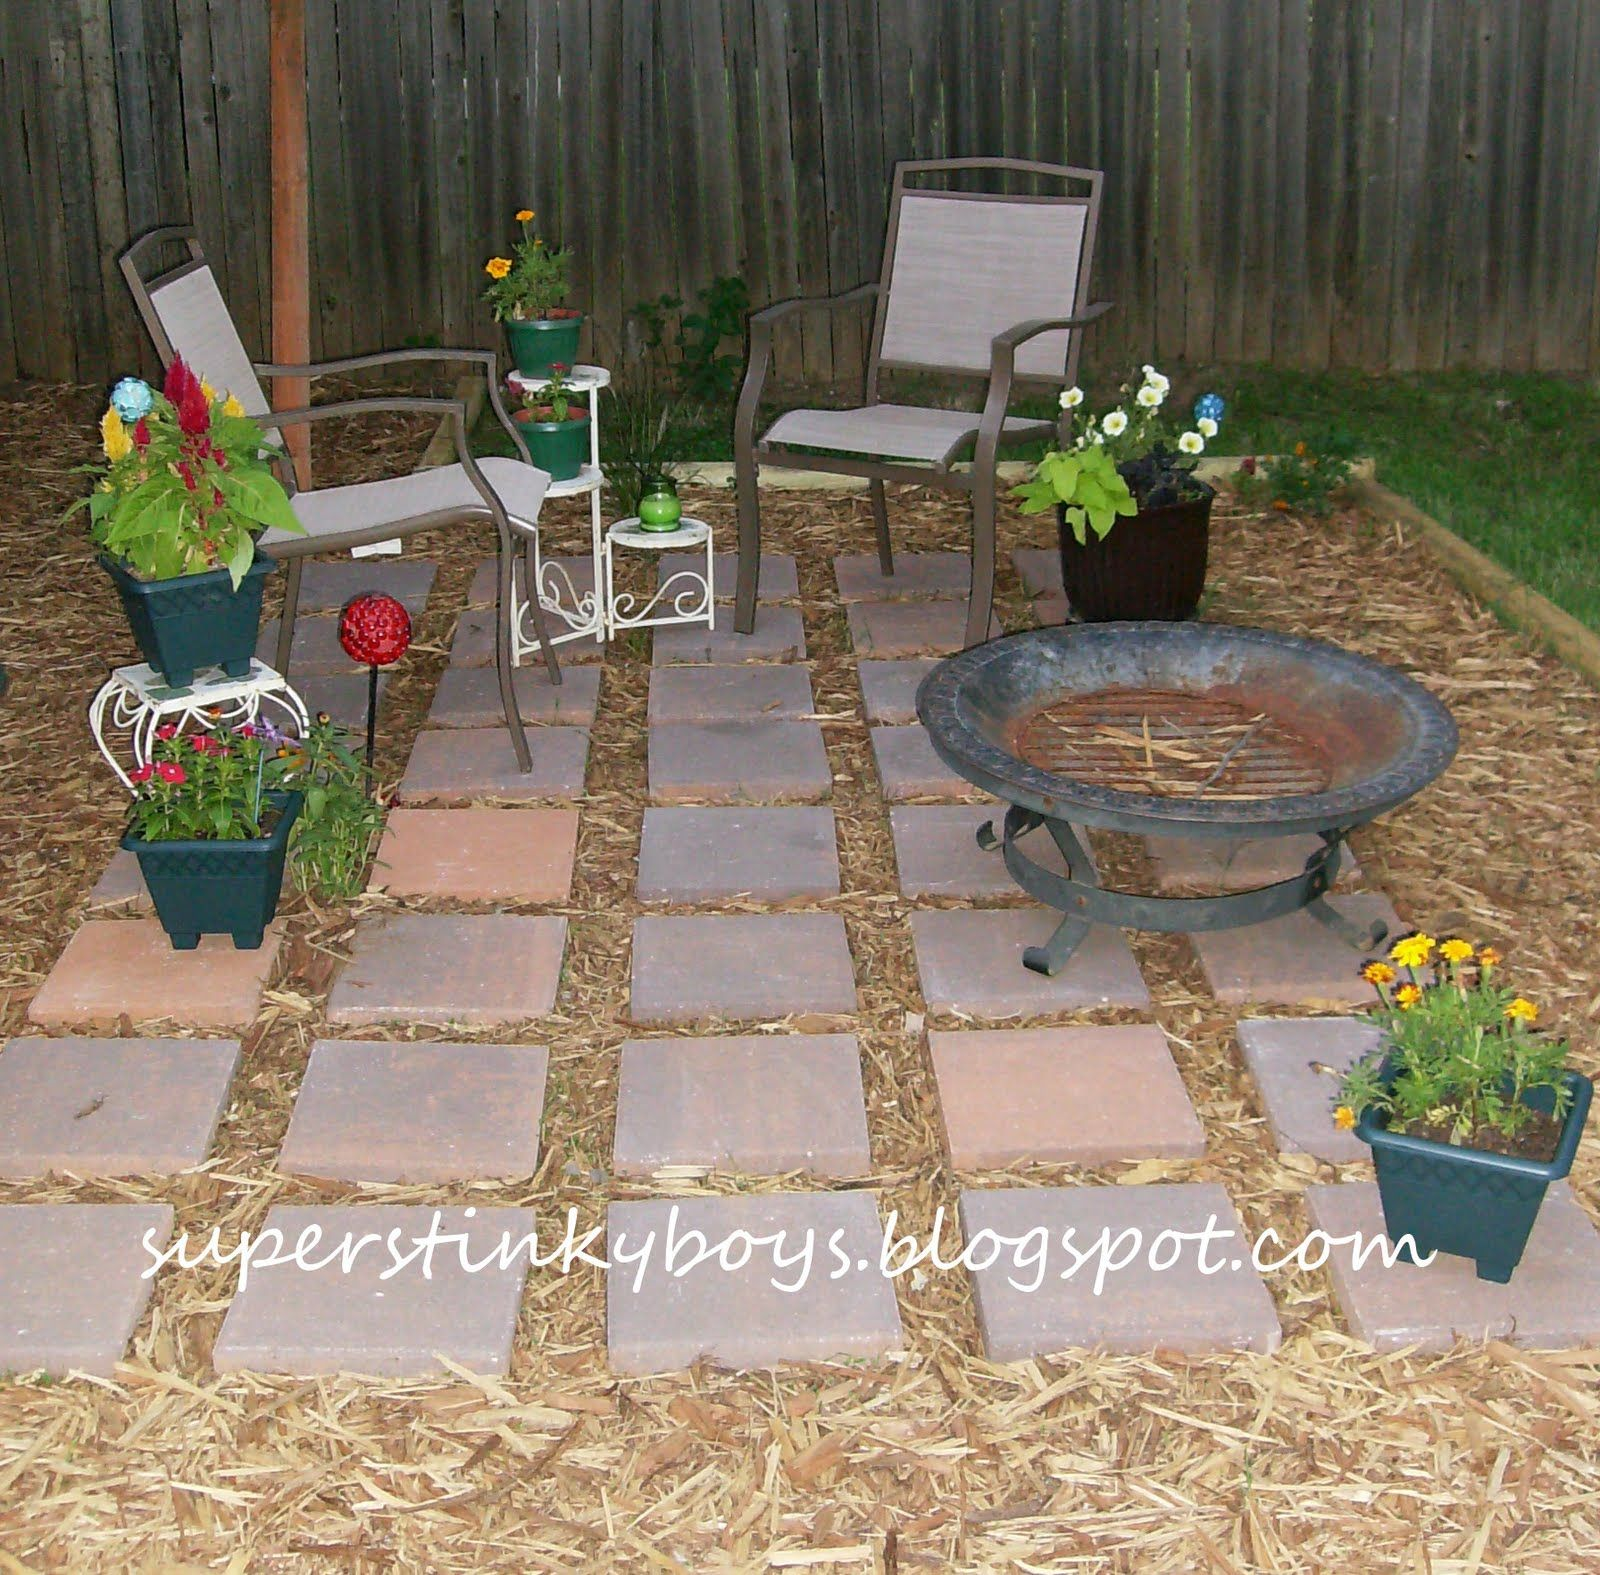 Great Backyards On a Budget We had a great time and I